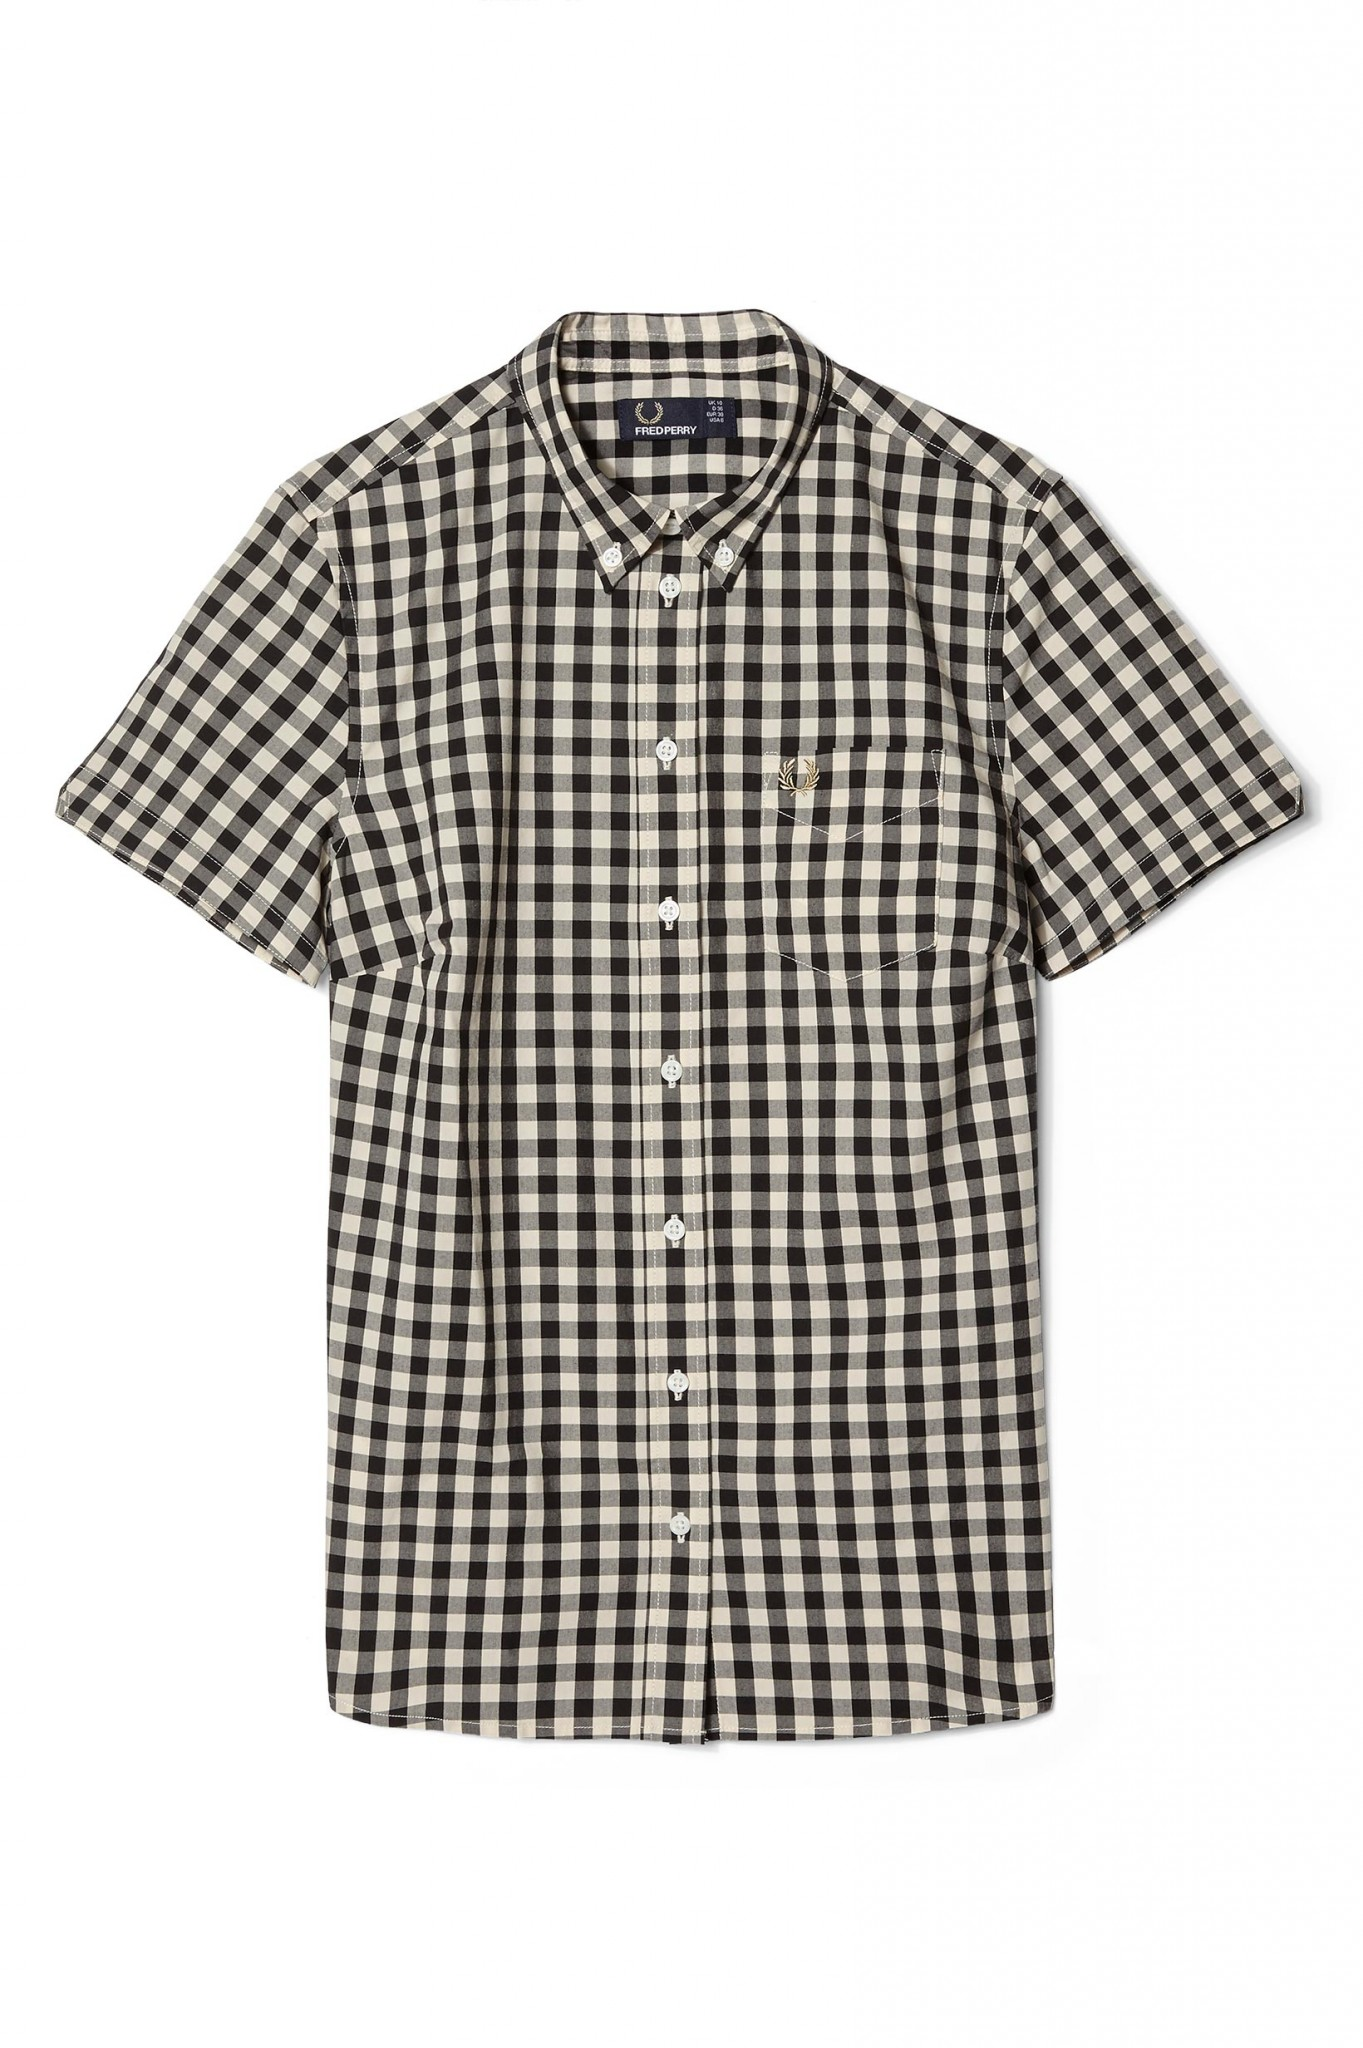 Bershka check shirt in black and white with button down collar. £ Bershka check shirt in red and black with button down collar. £ Religion Slim Fit Check Shirt In Red. £ BadRhino Big Long Sleeve Brushed Check Shirt In Red. £ PS Paul Smith tailored fit flannel check shirt in navy.